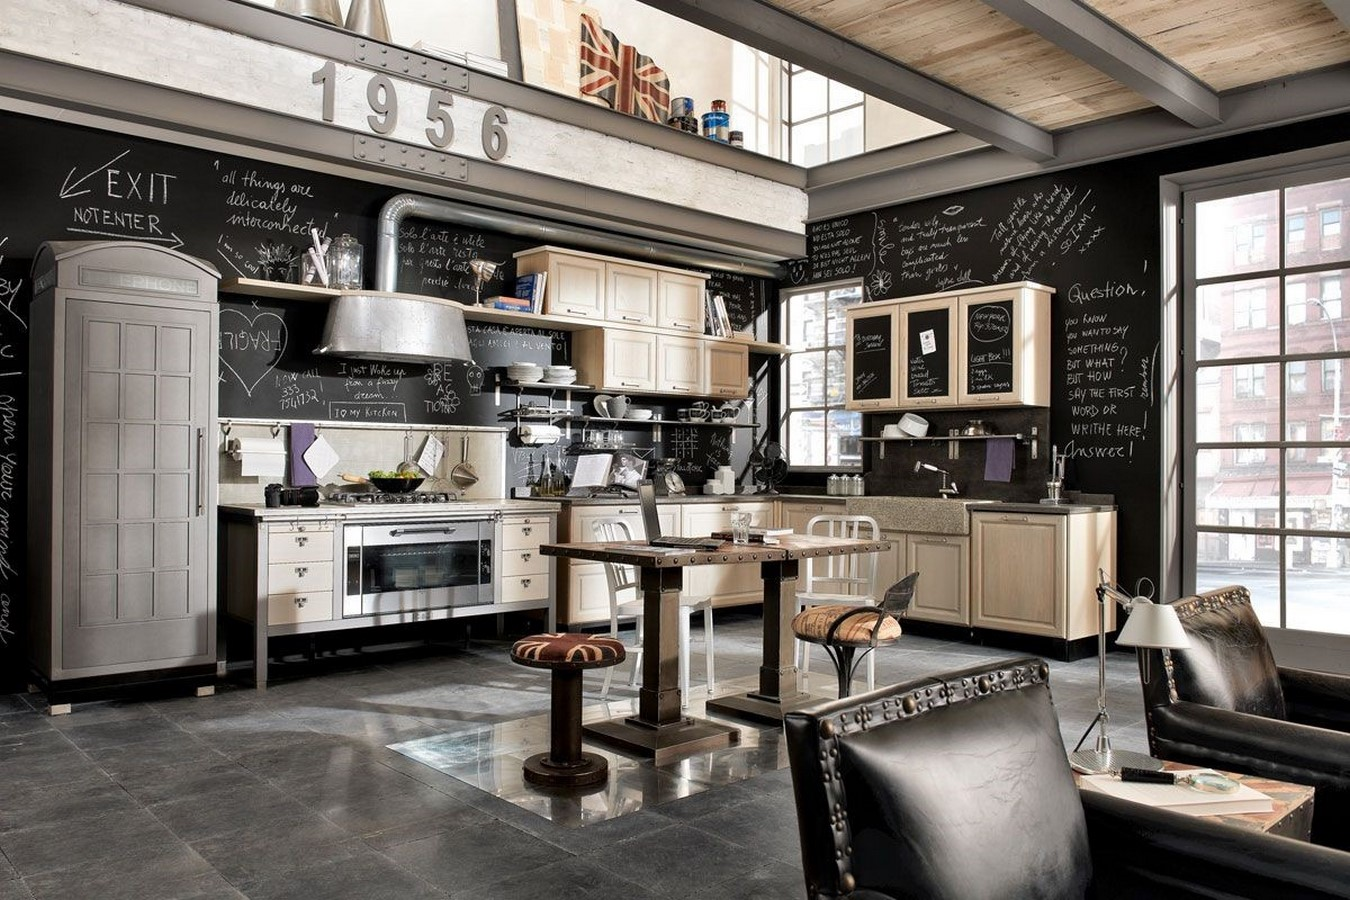 20 Interior Design Trends to look for in 2021 - Sheet3